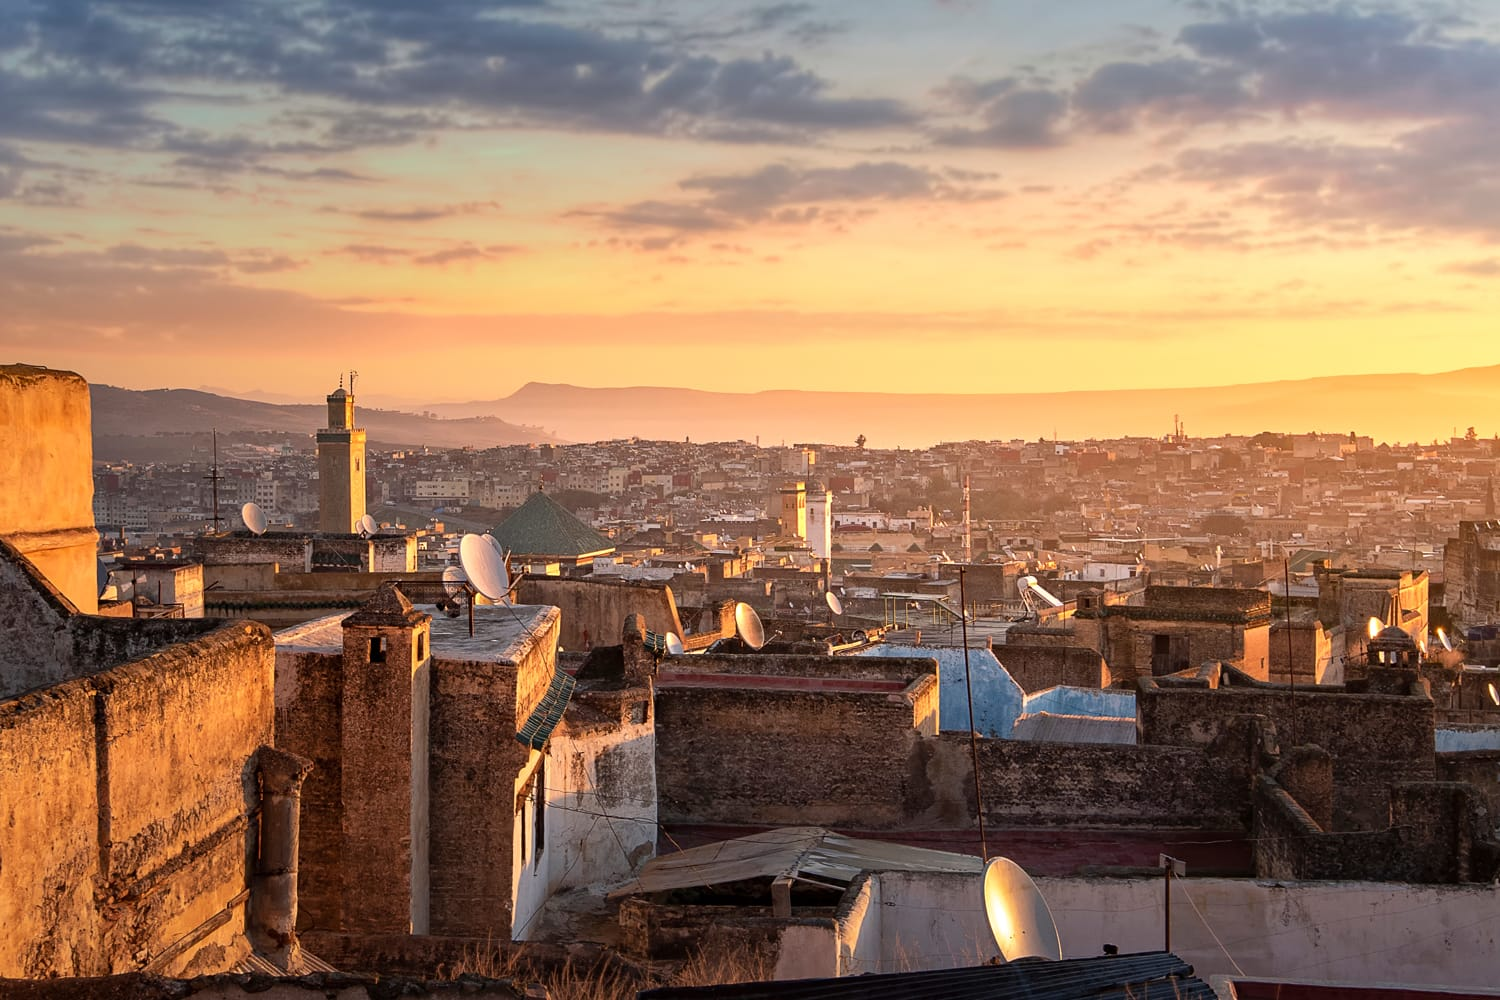 View of the old Medina in Fez (Fes El Bali), Morocco at sunrise.